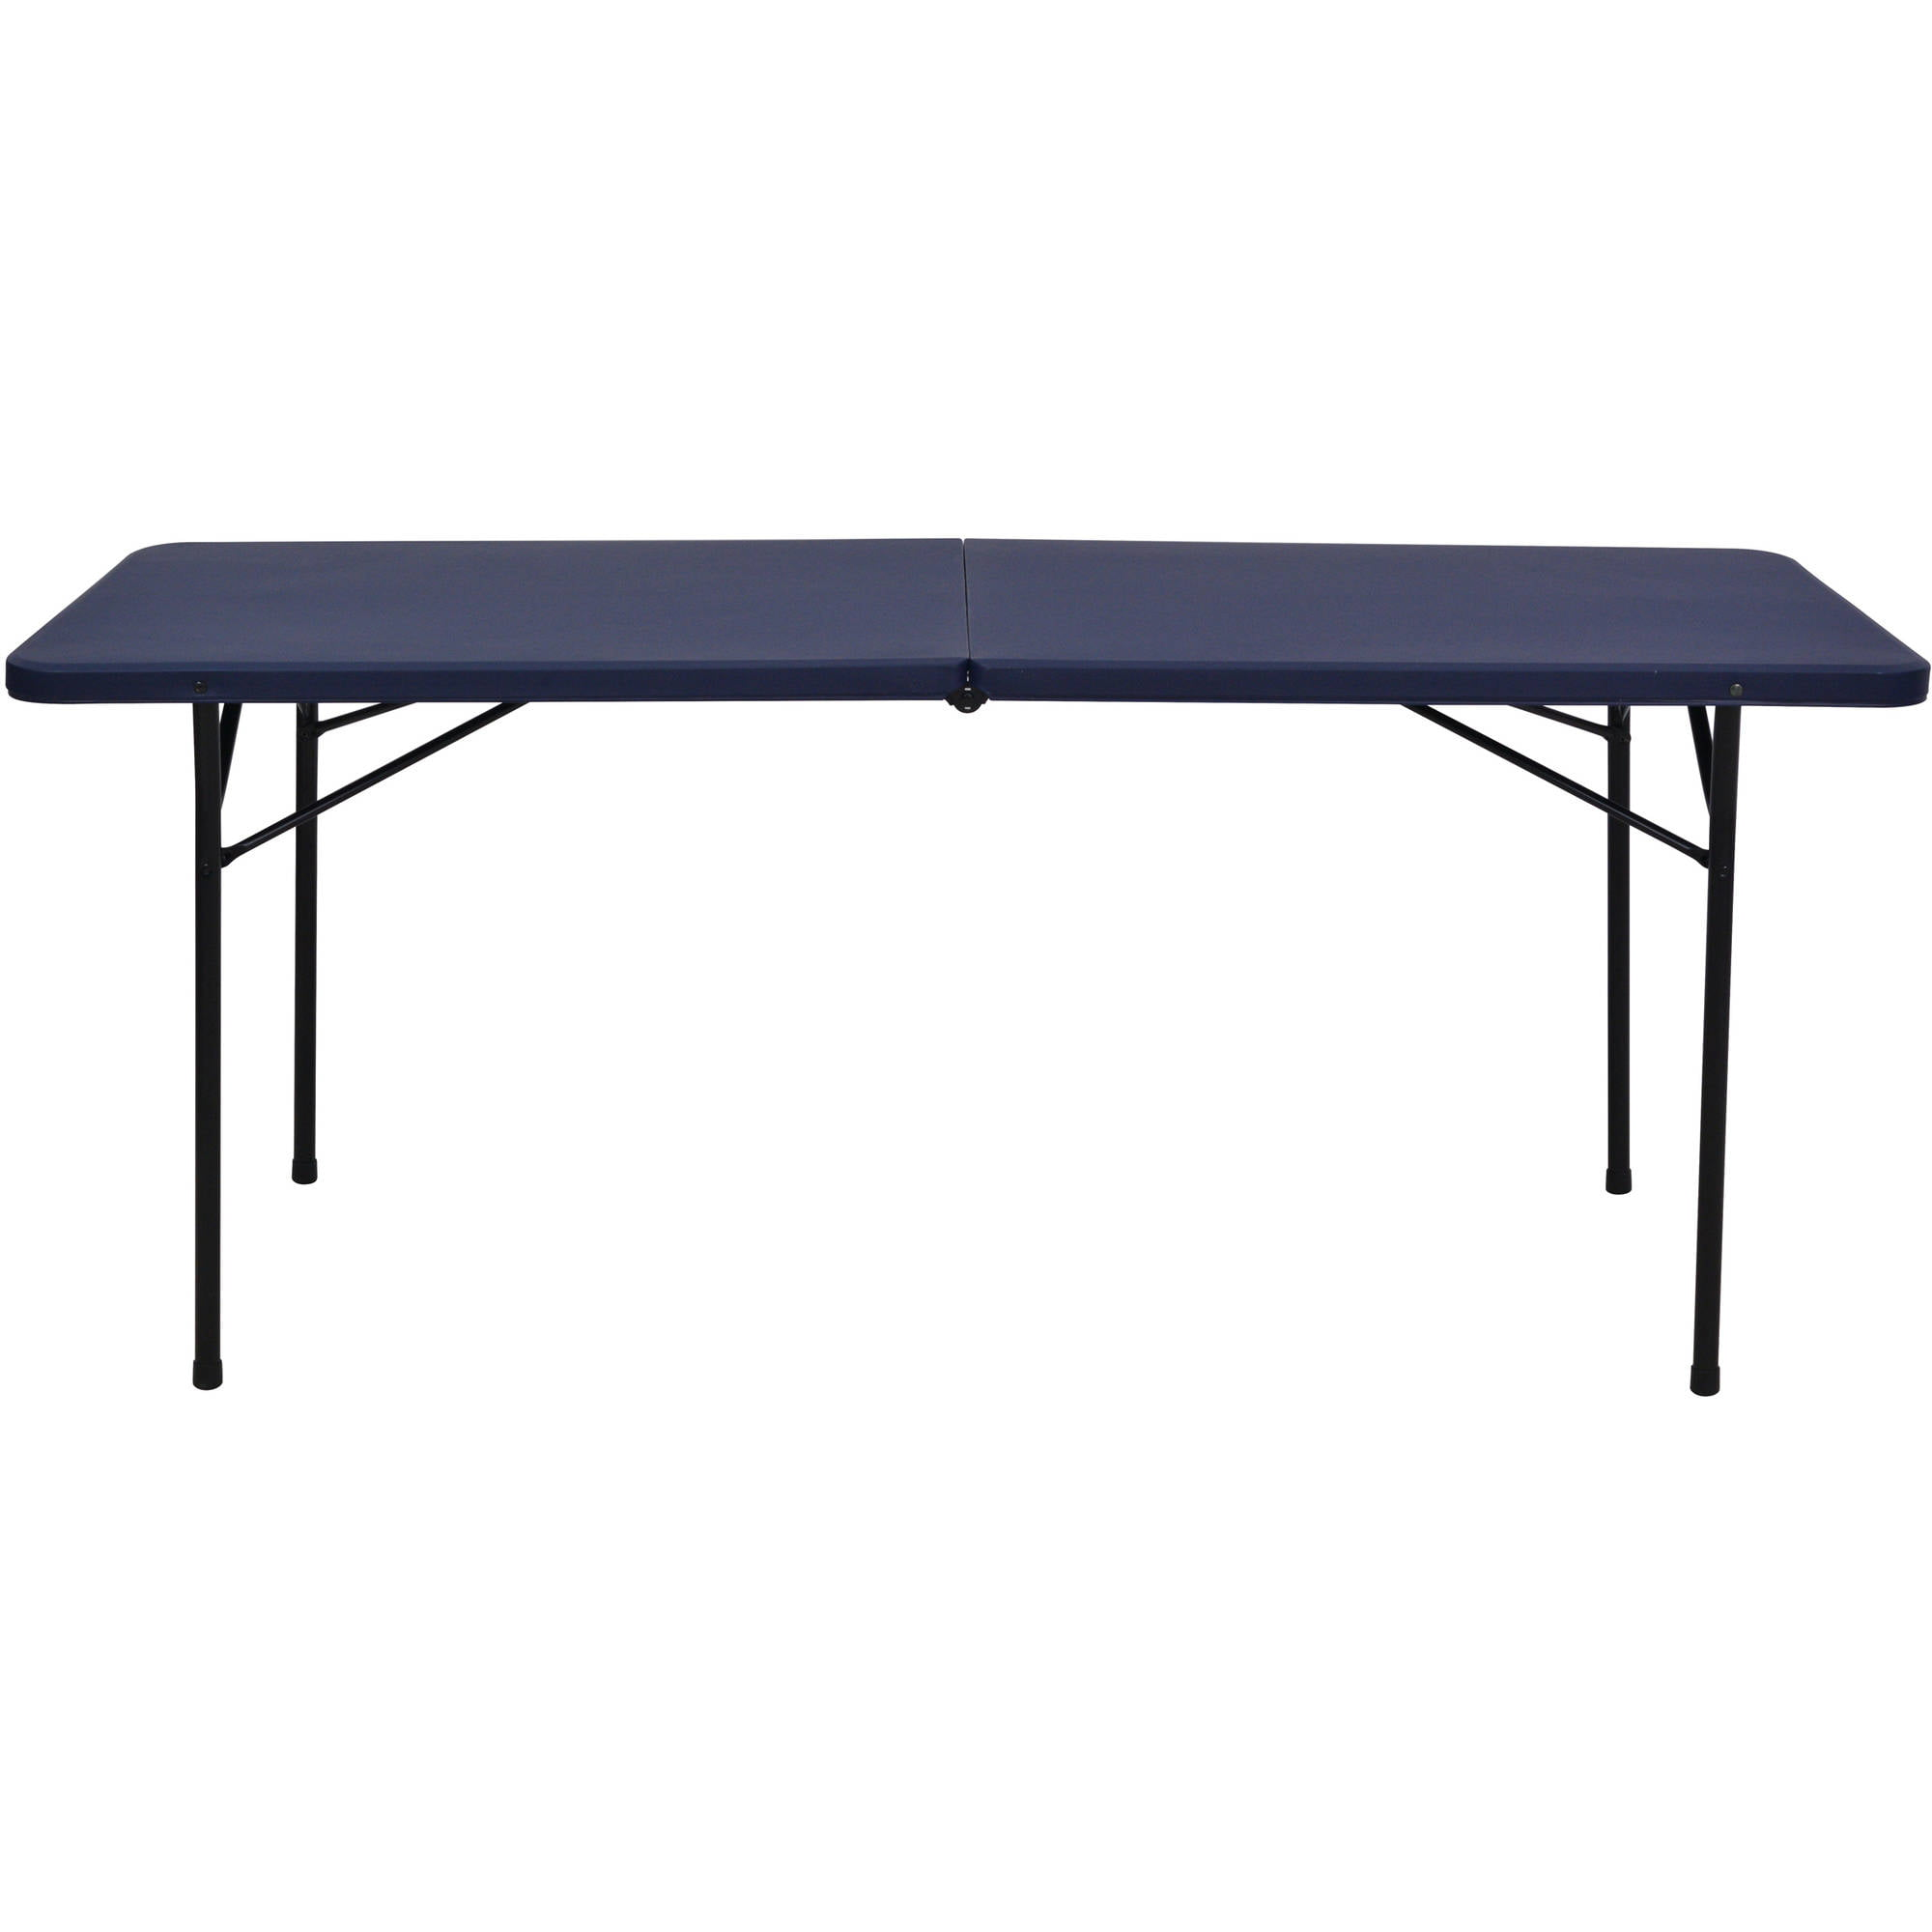 Mainstays 6u0027 Fold In Half Tailgate Table, Multiple Colors   Walmart.com